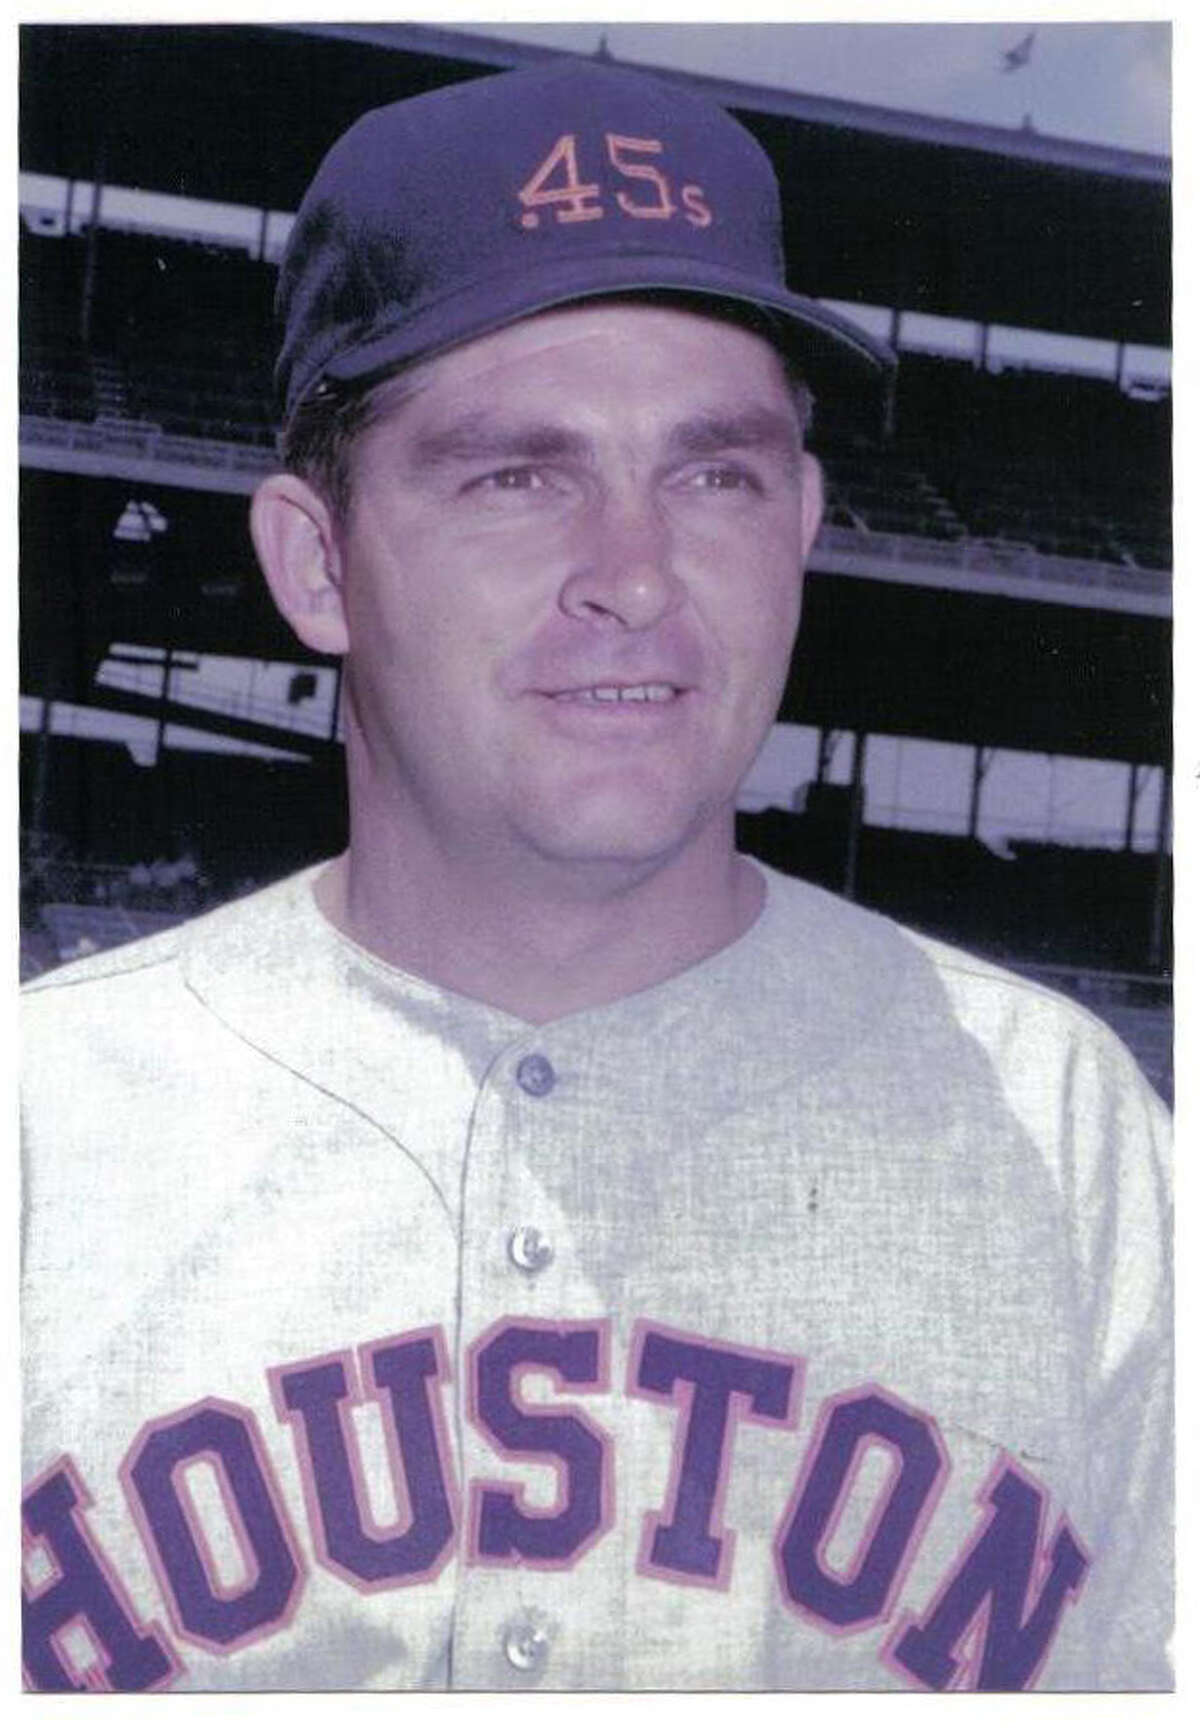 Don Nottebart Date: May 17, 1964 Score:Astros 4, Phillies 1